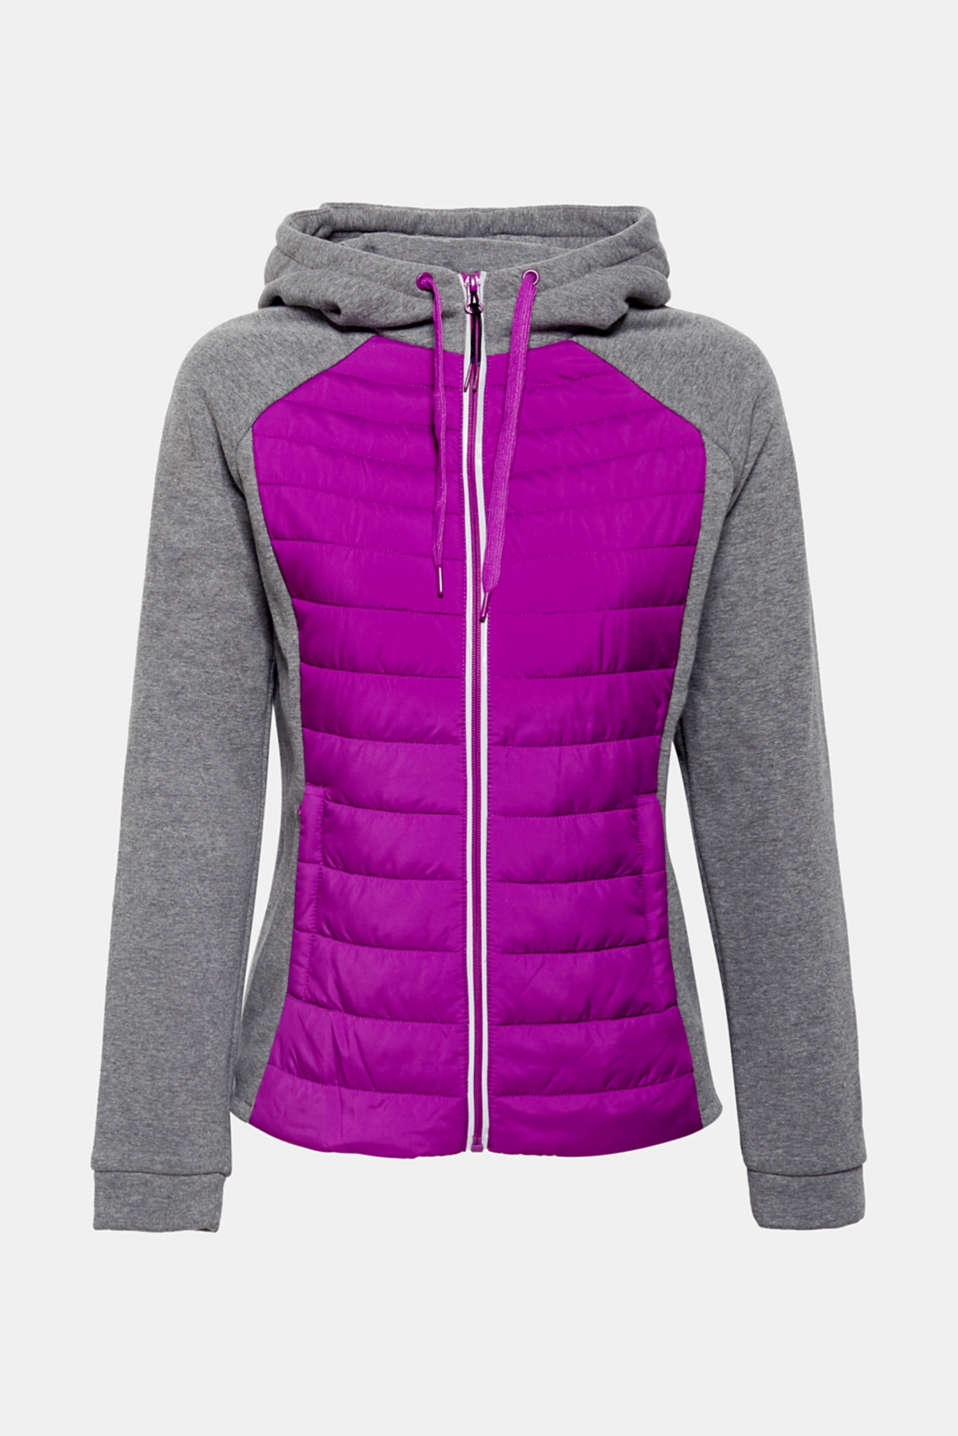 Dense jersey meets quilted, padded nylon – on this fitted jacket with a hood and reflective zip. – Great for all sporty outdoor activities!